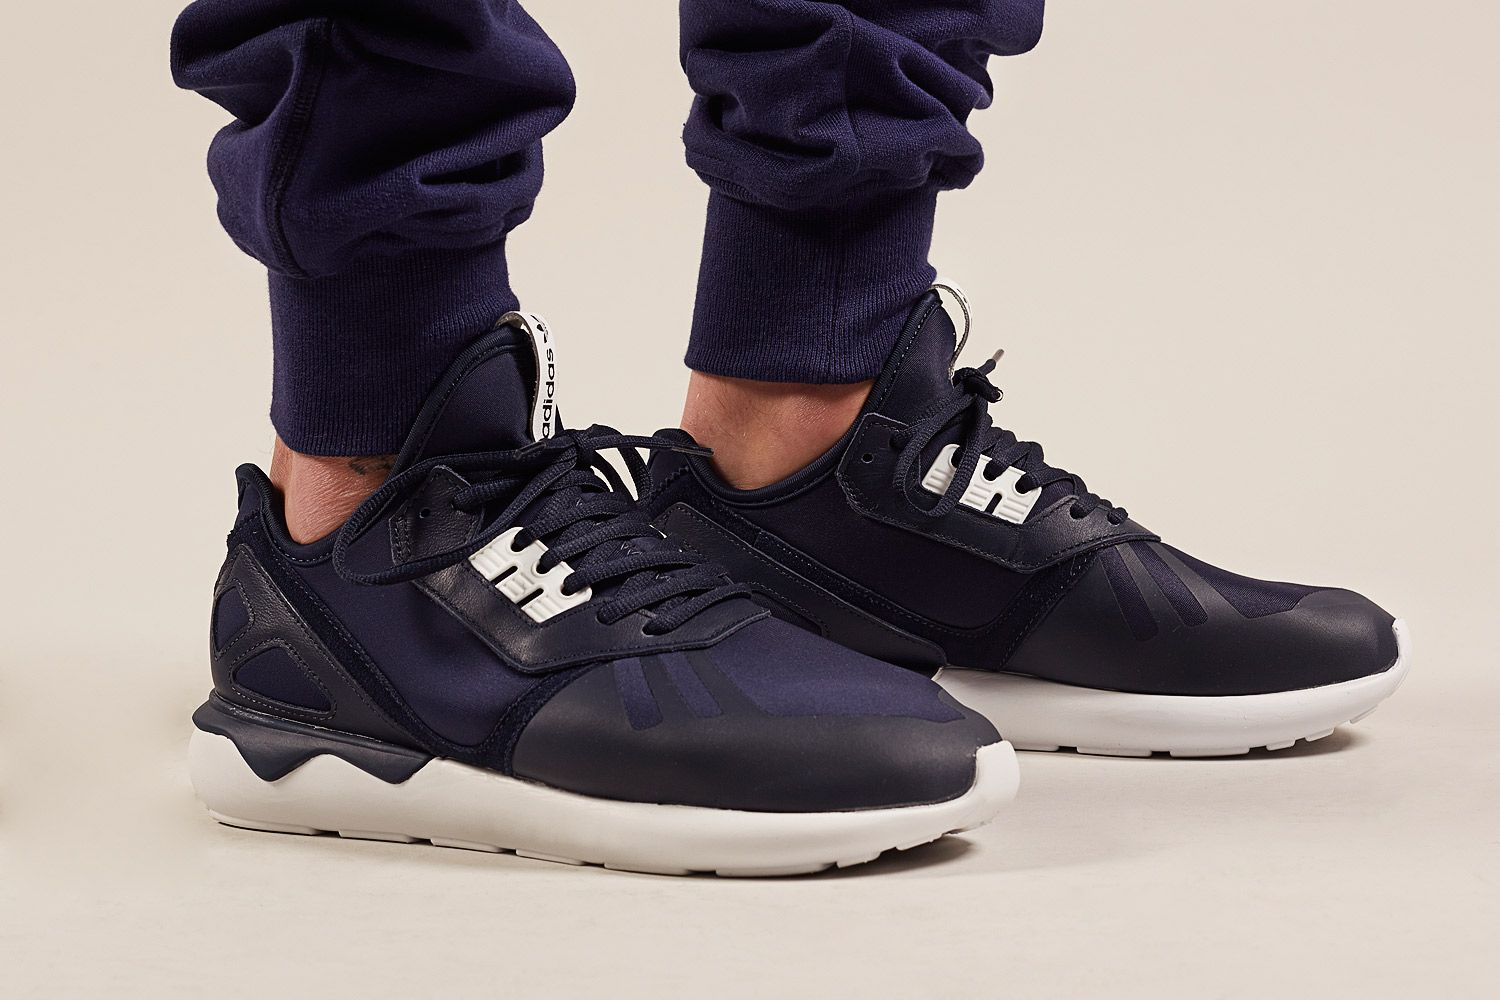 Adidas Originals Tubular Runner All Black